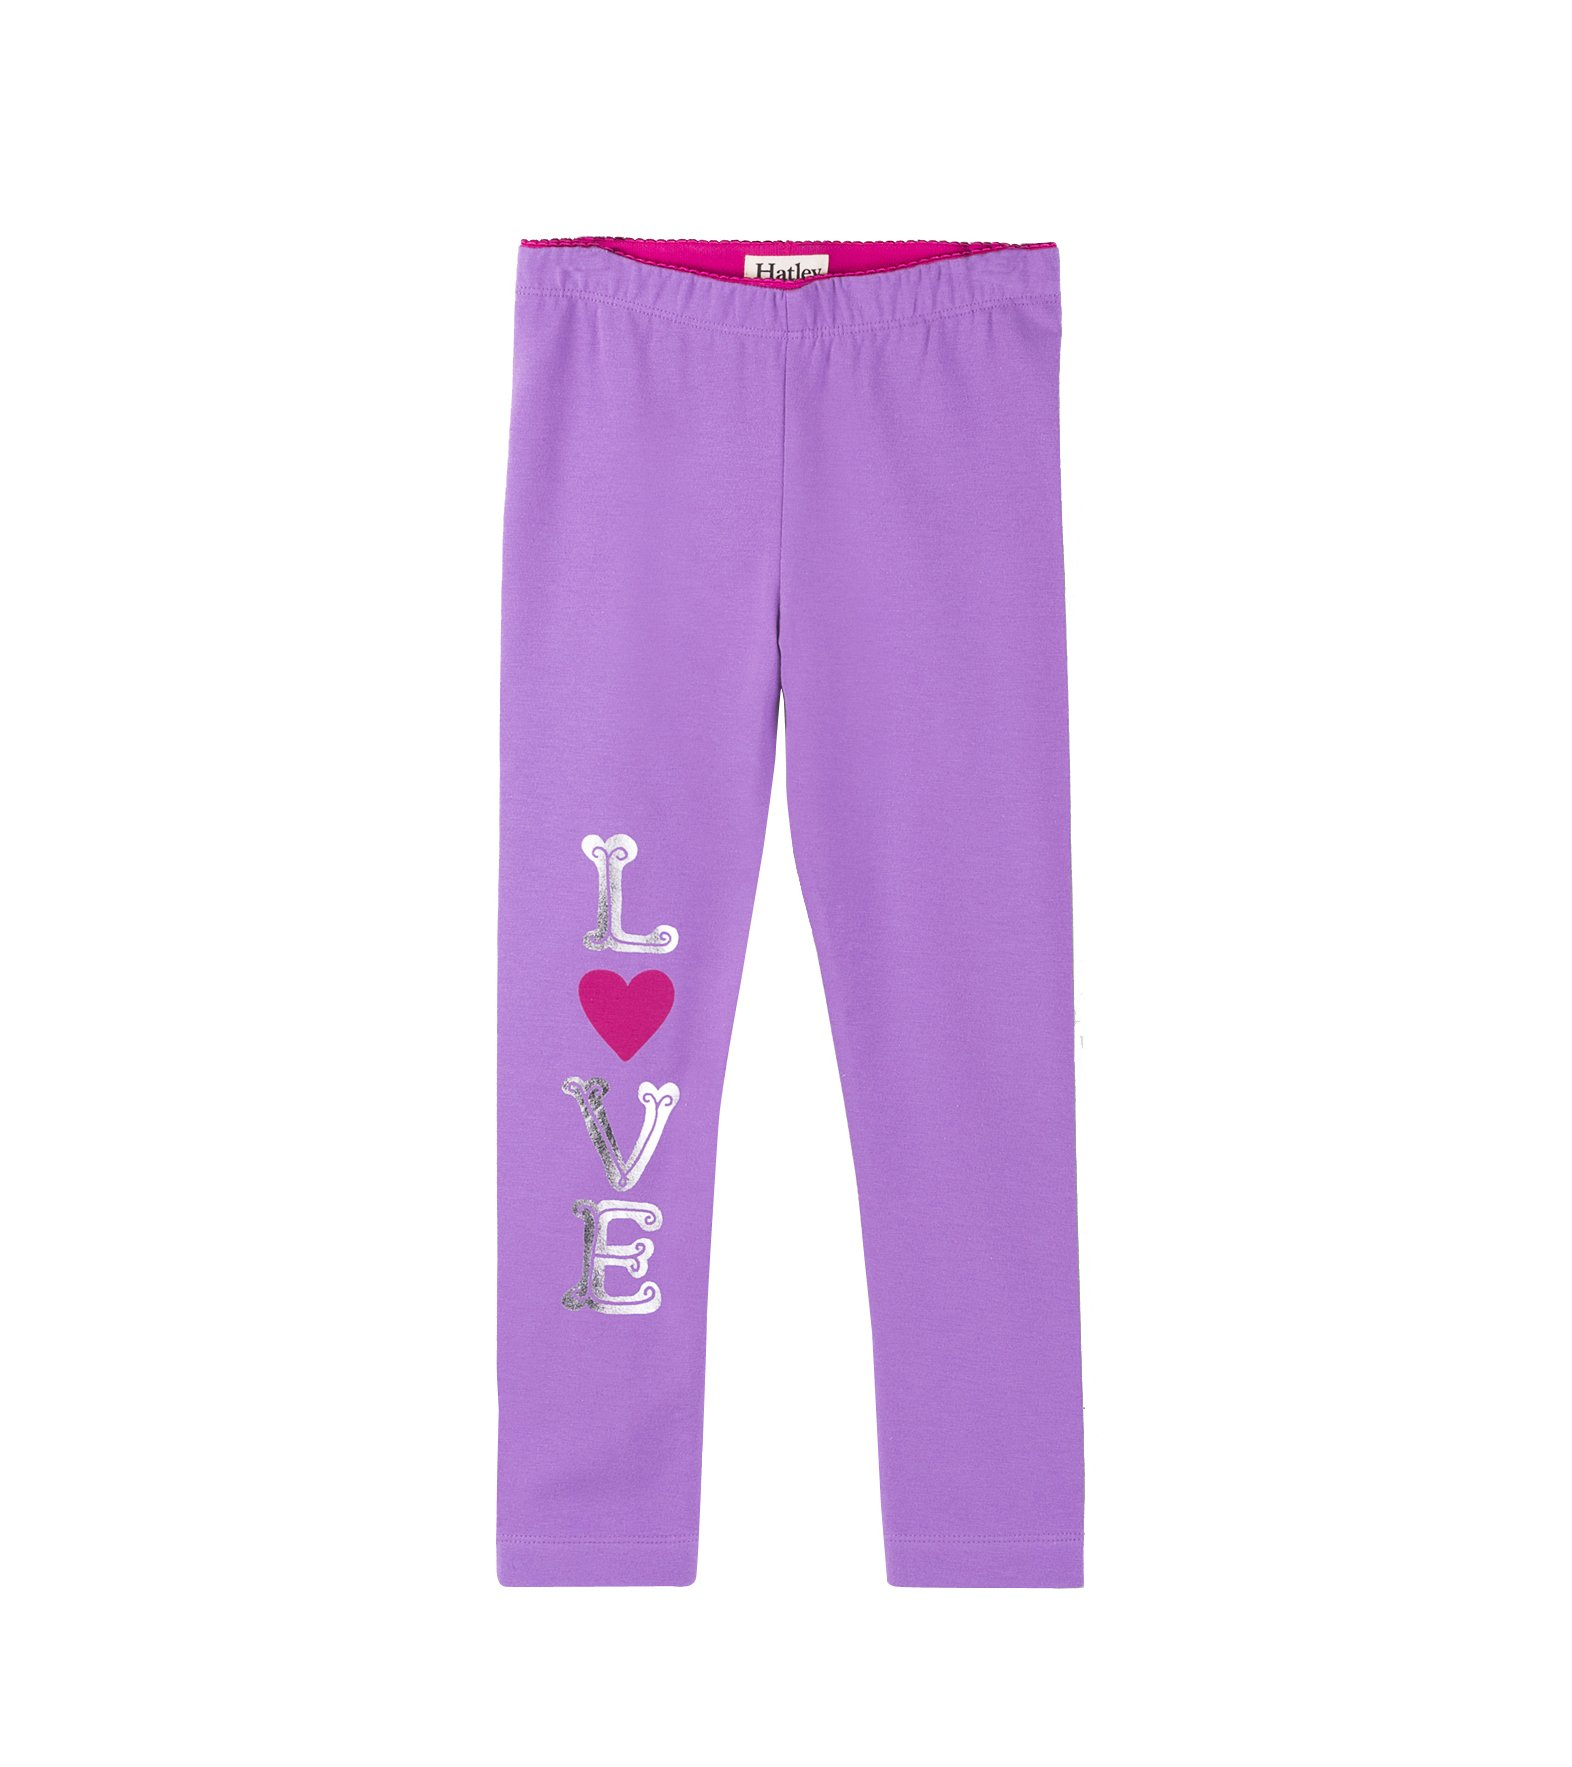 Hatley Big Girls' Leggings, Lavender, 7 Years